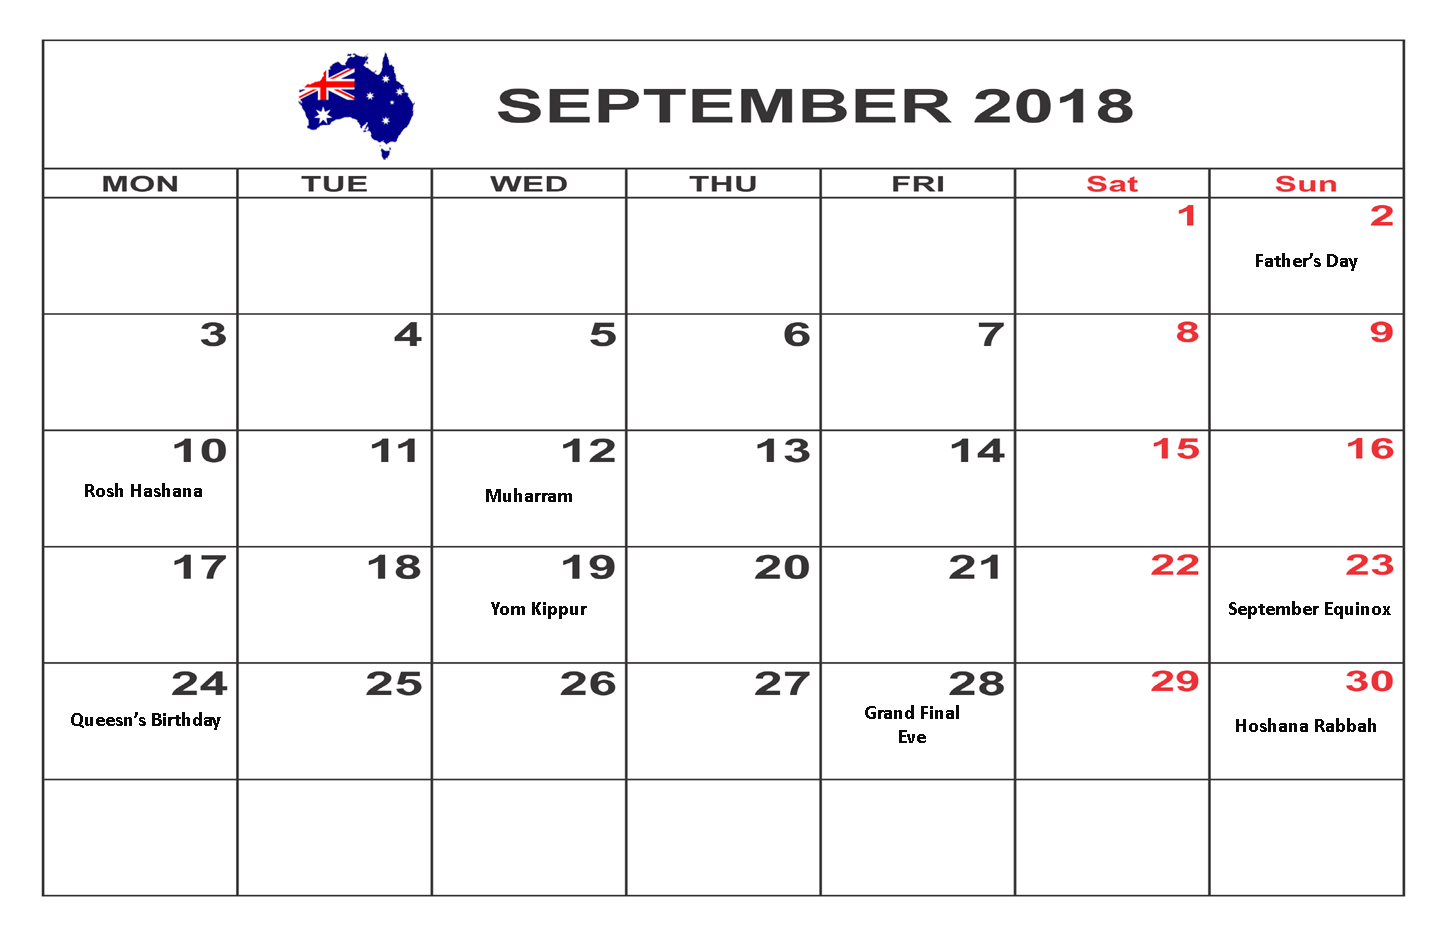 September 2018 Calendar Australia Bank Holidays